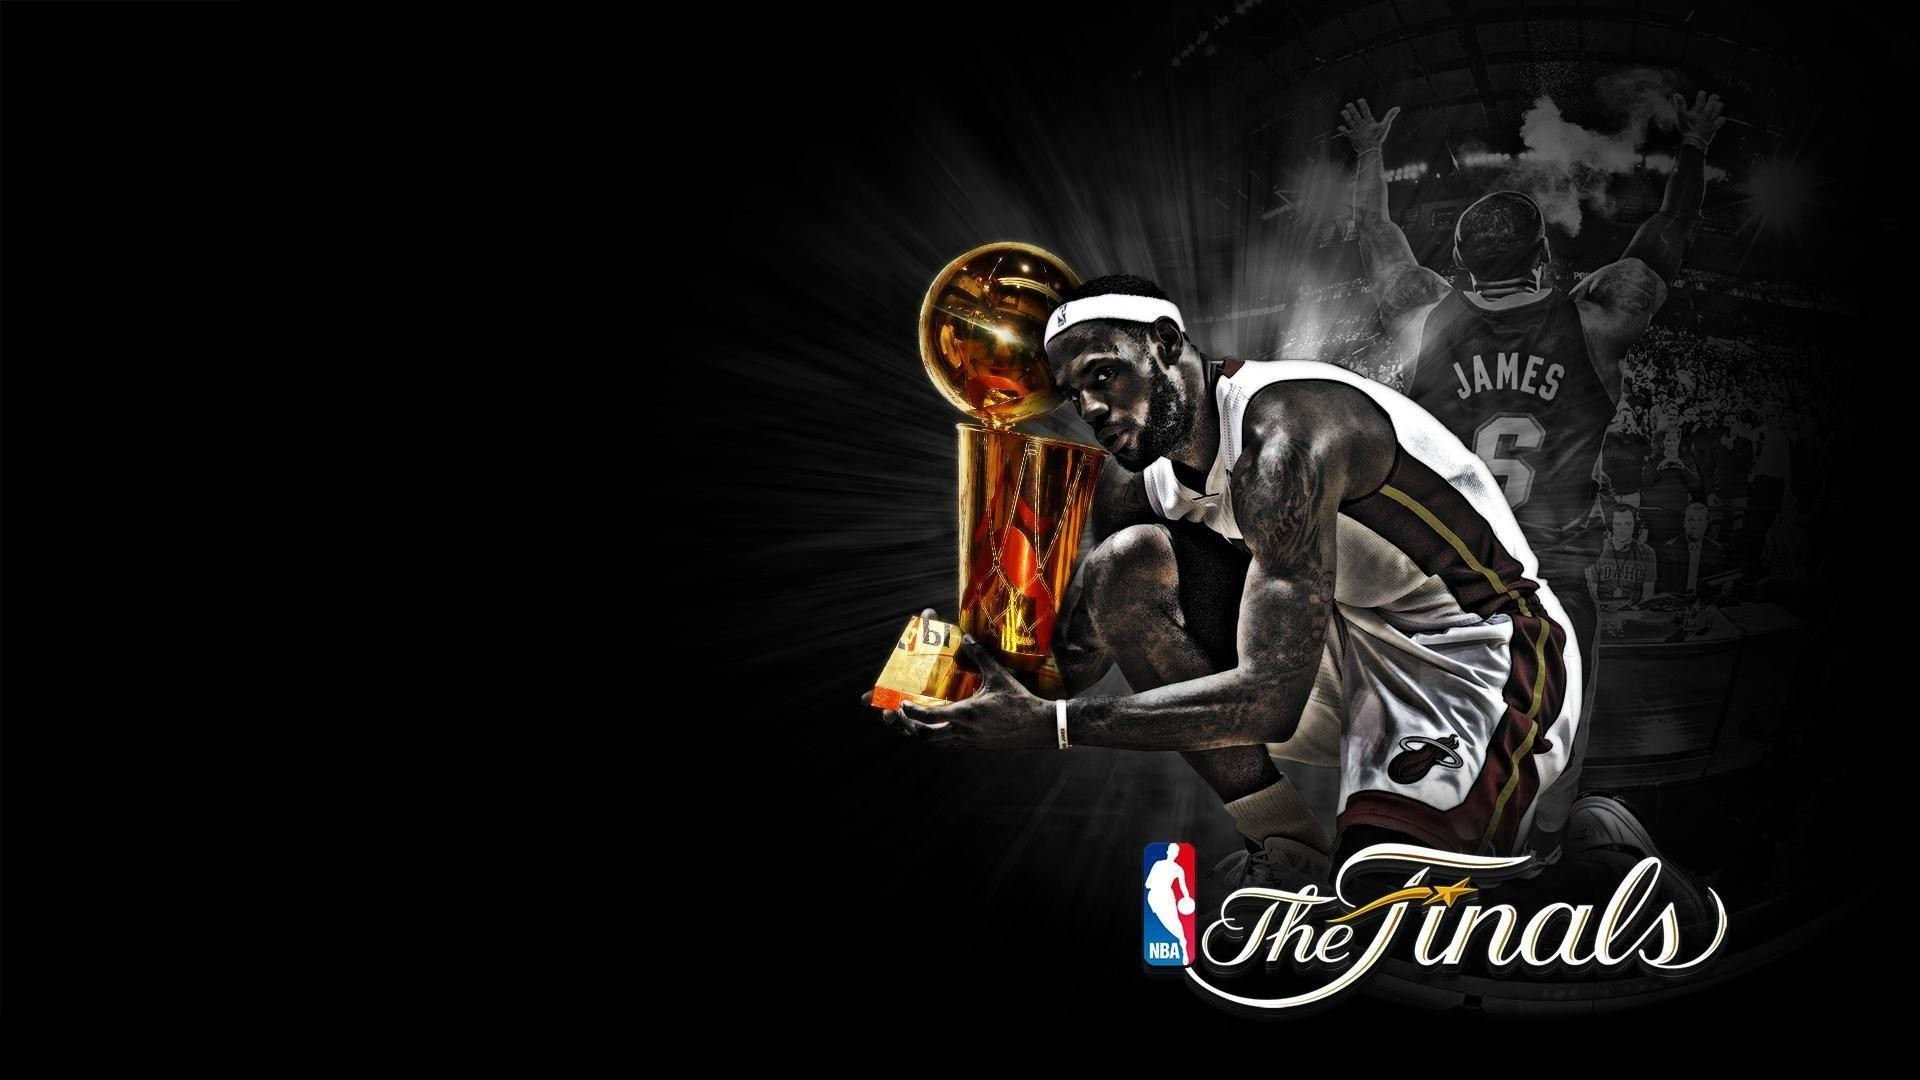 50 Nba Wallpapers Download Free Hd Backgrounds For: Basketball Players Wallpapers (71+ Images